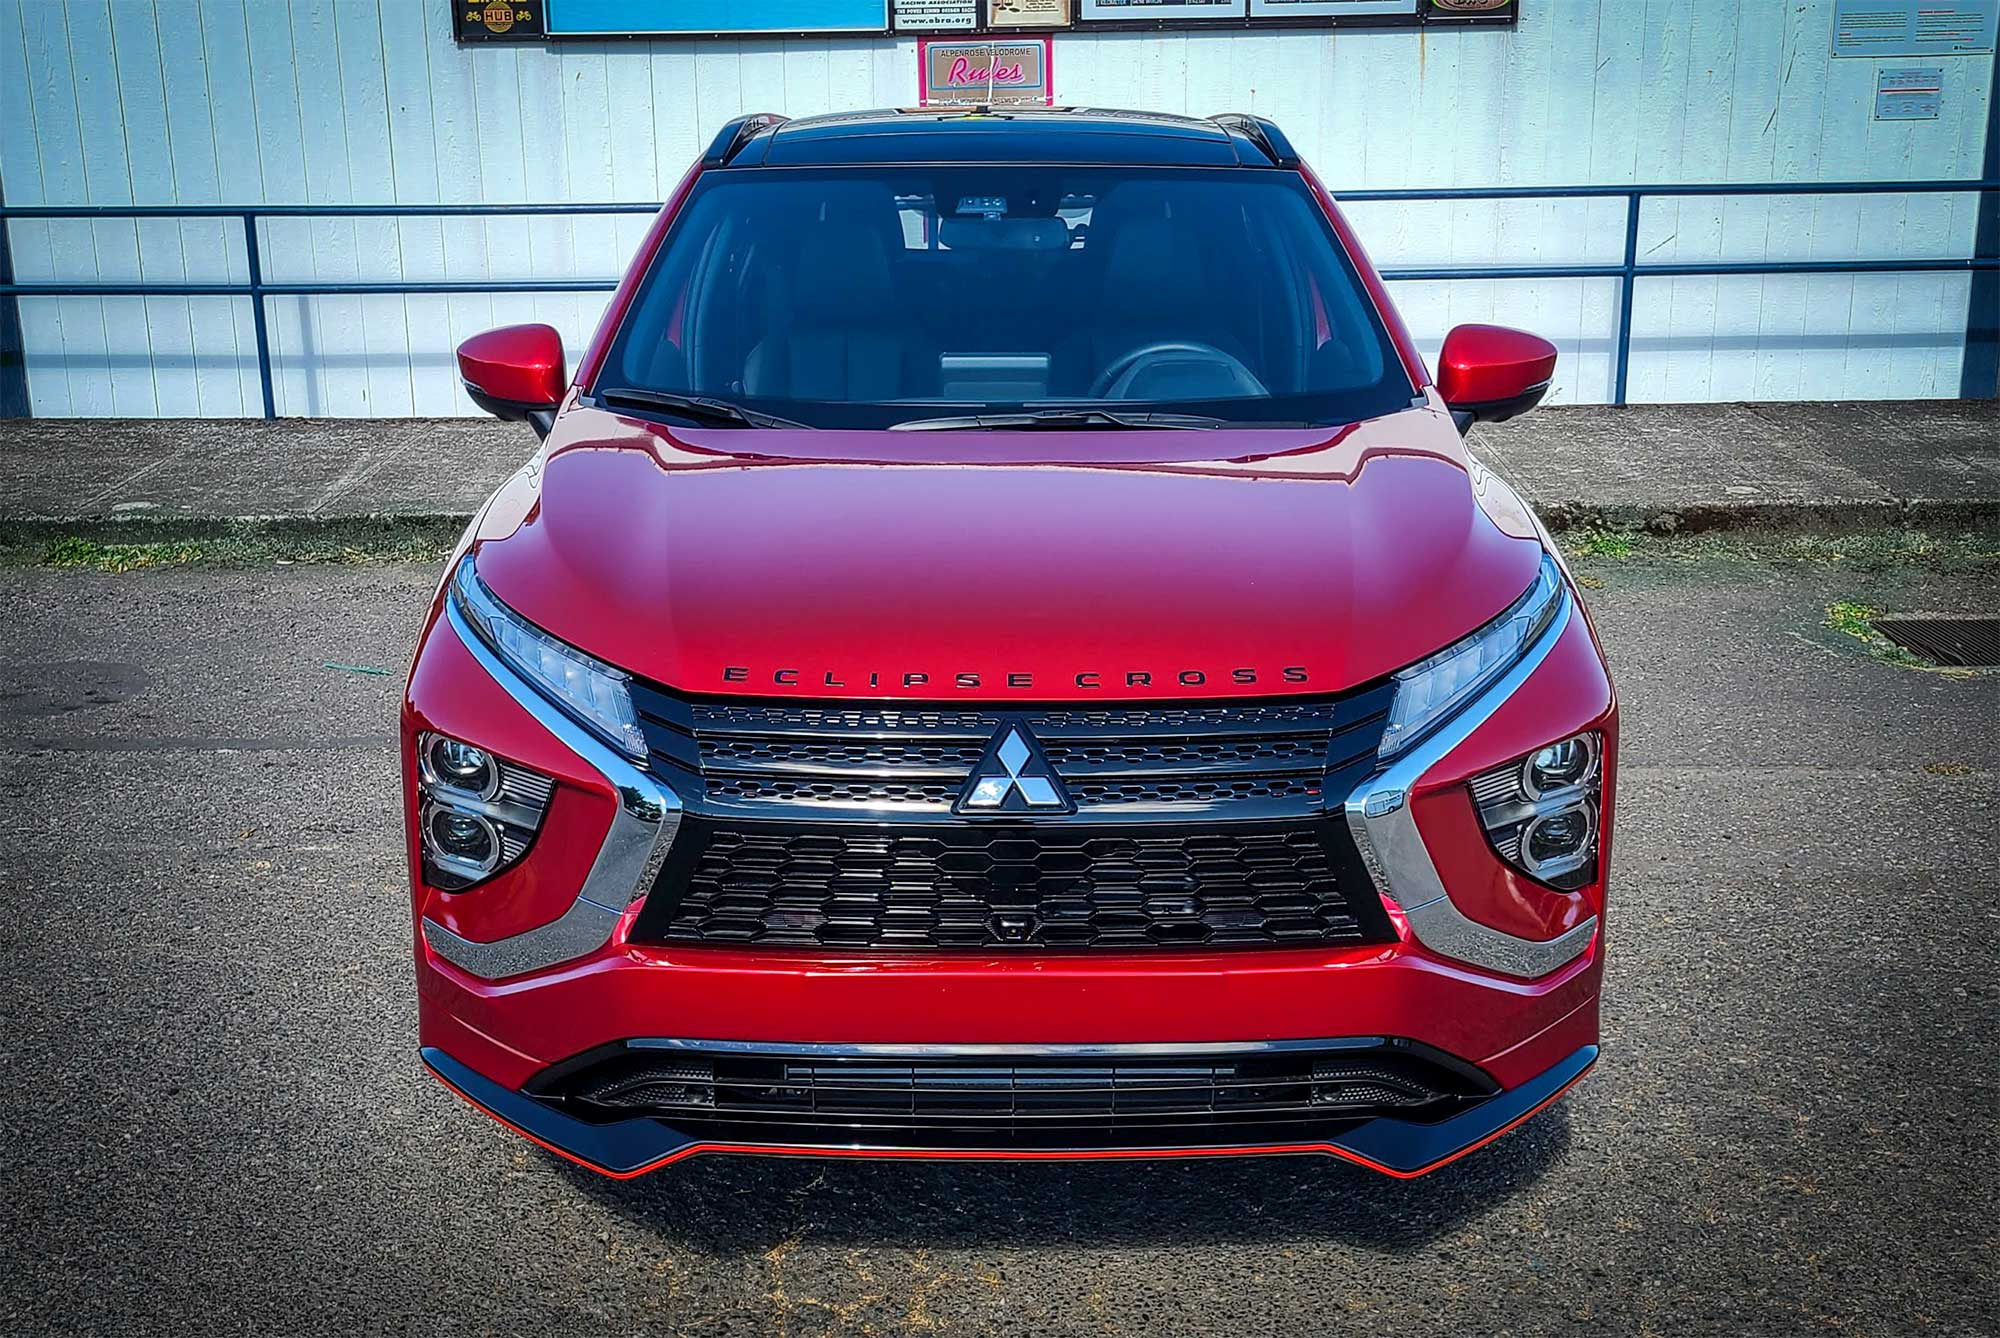 The 2022 Mitsubishi Eclipse Cross sports the company's Dynamic Shield front end.